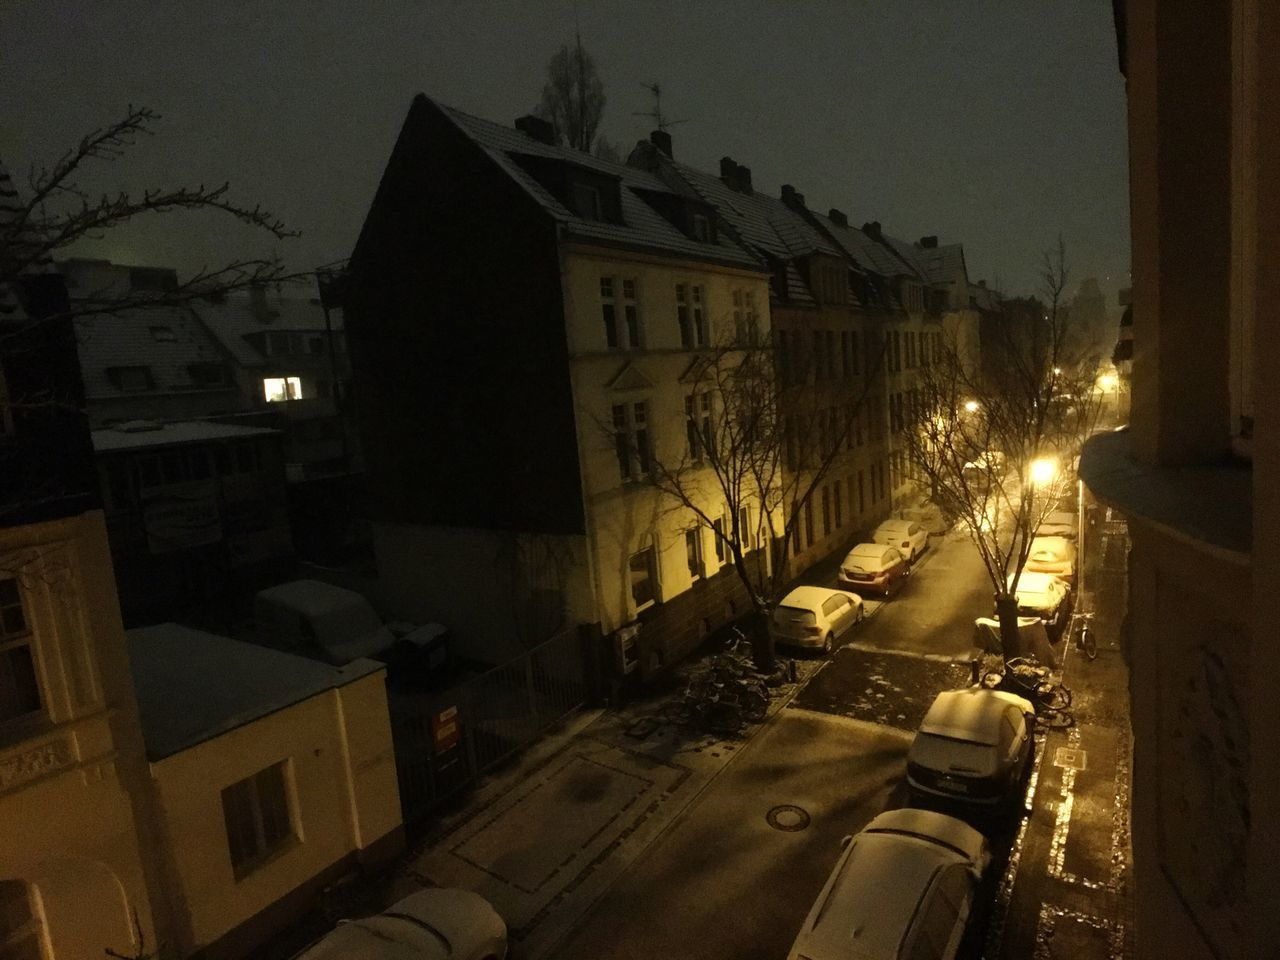 Building Exterior Illuminated Architecture Built Structure Night City No People Cold Temperature Winter Outdoors Snow Germany Street Streetphotography